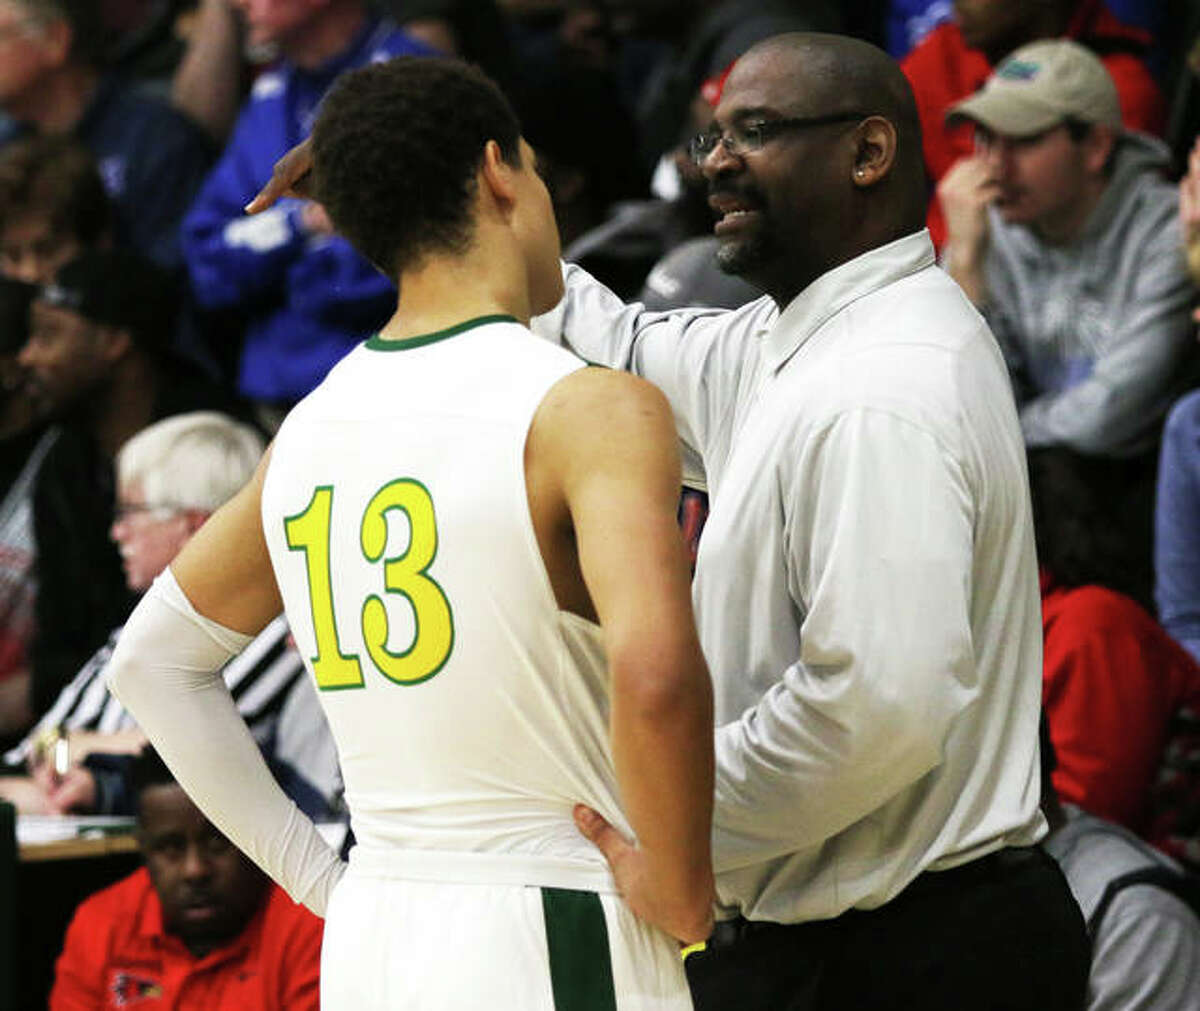 Metro-East Lutheran coach Anthony Smith talks to his son and Knights star AJ Smith (13) during a game in the 2019-20 season at Hooks Gym in Edwardsville. Smith is the 2021 Telegraph Small-Schools Boys Basketball Coach of the Year.